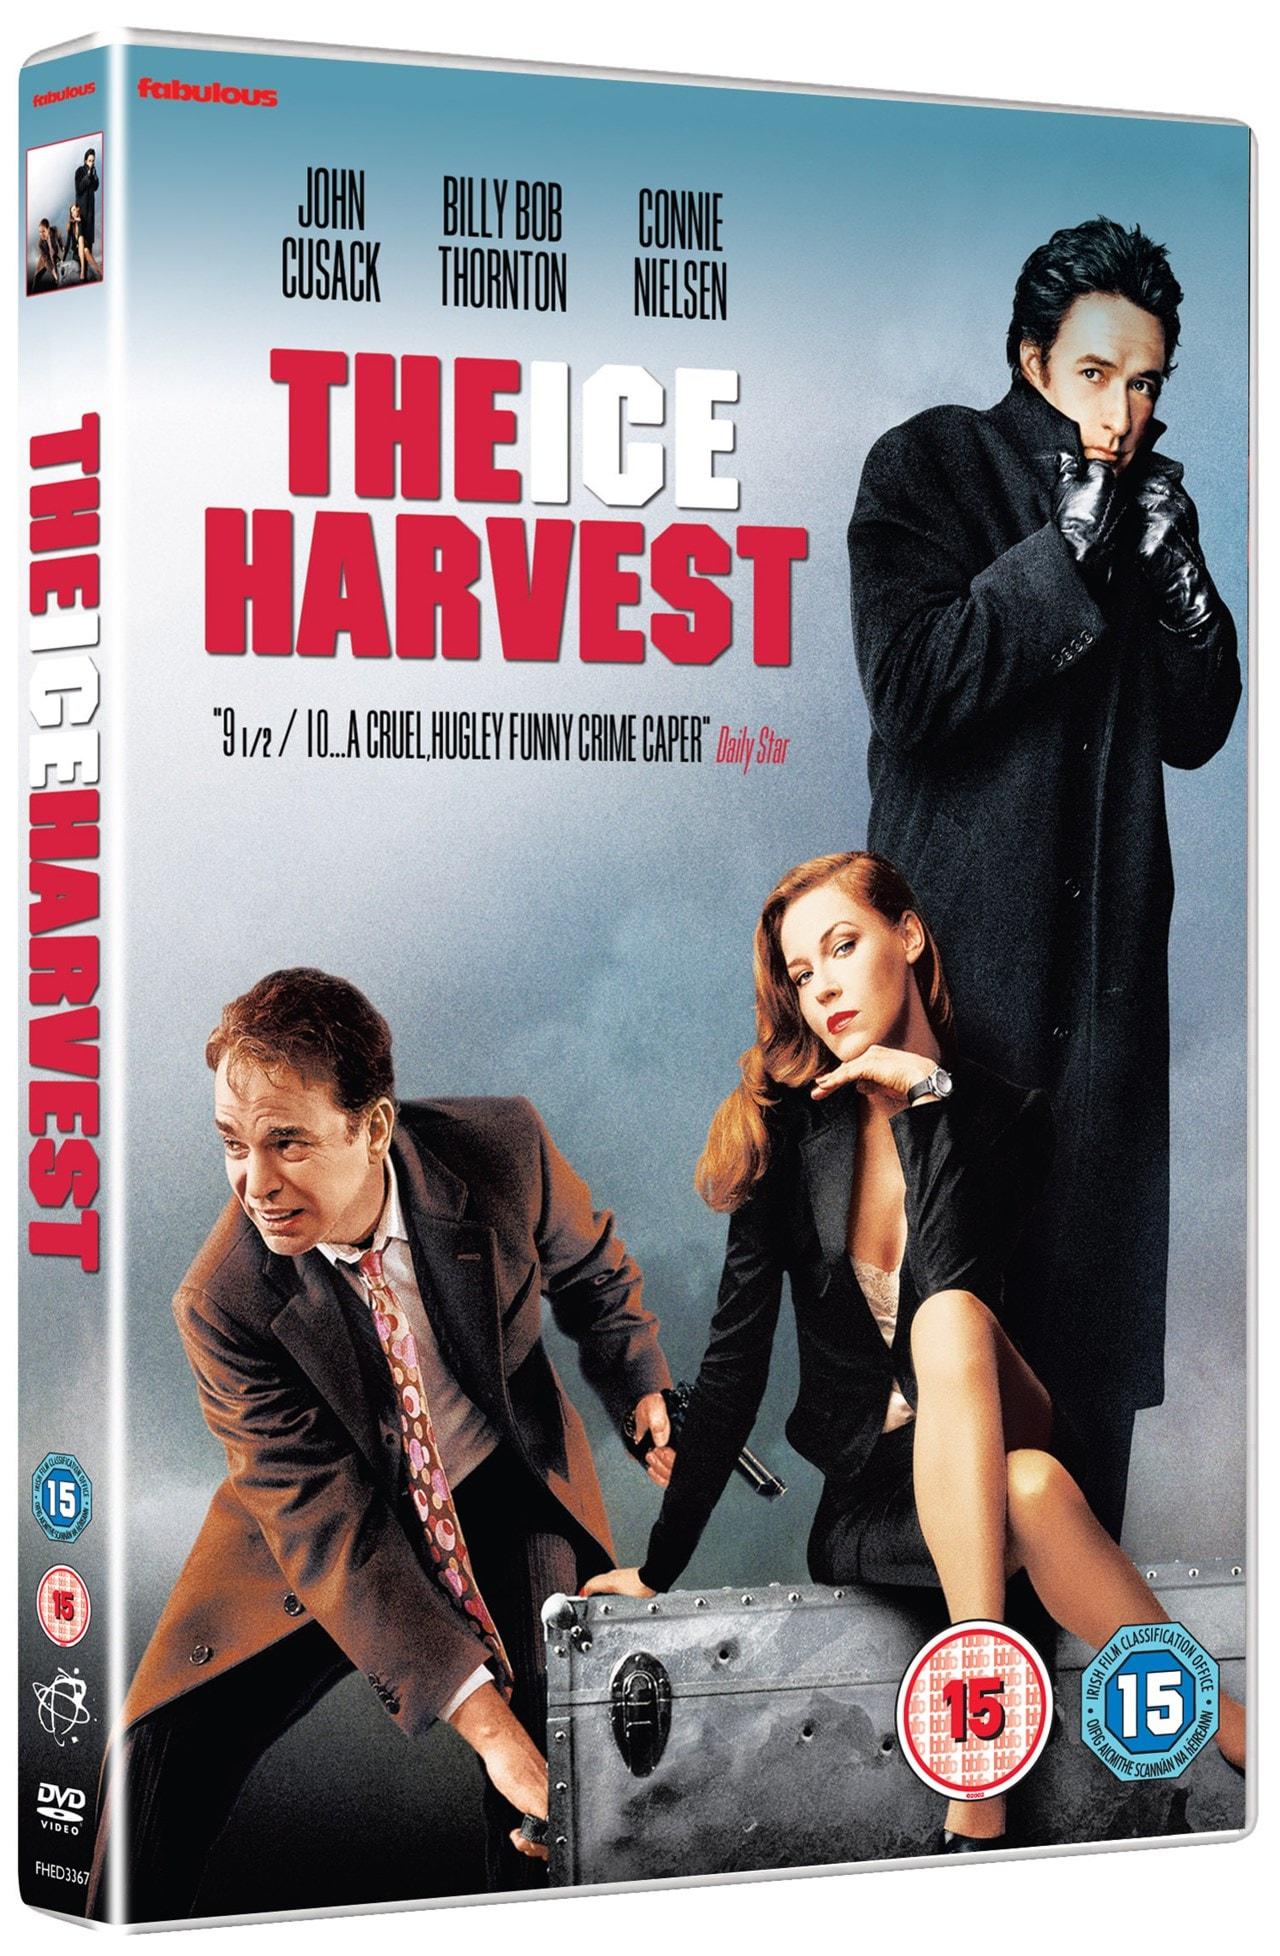 The Ice Harvest - 2